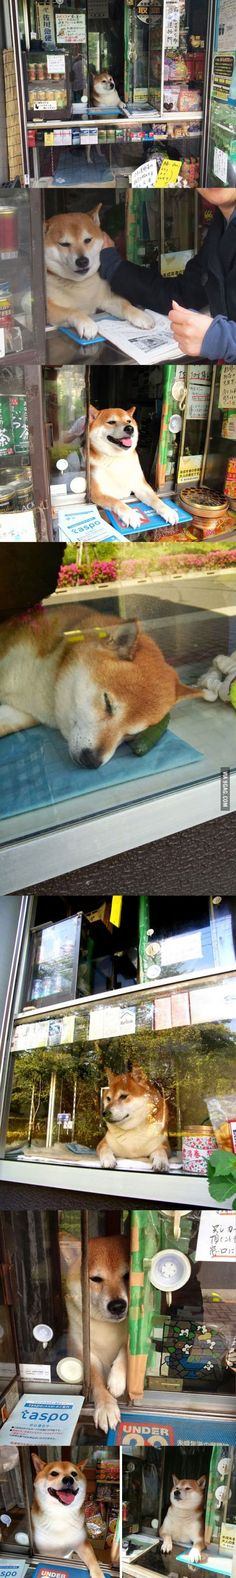 This doge works at a cigarette stand in Japan - 9GAG